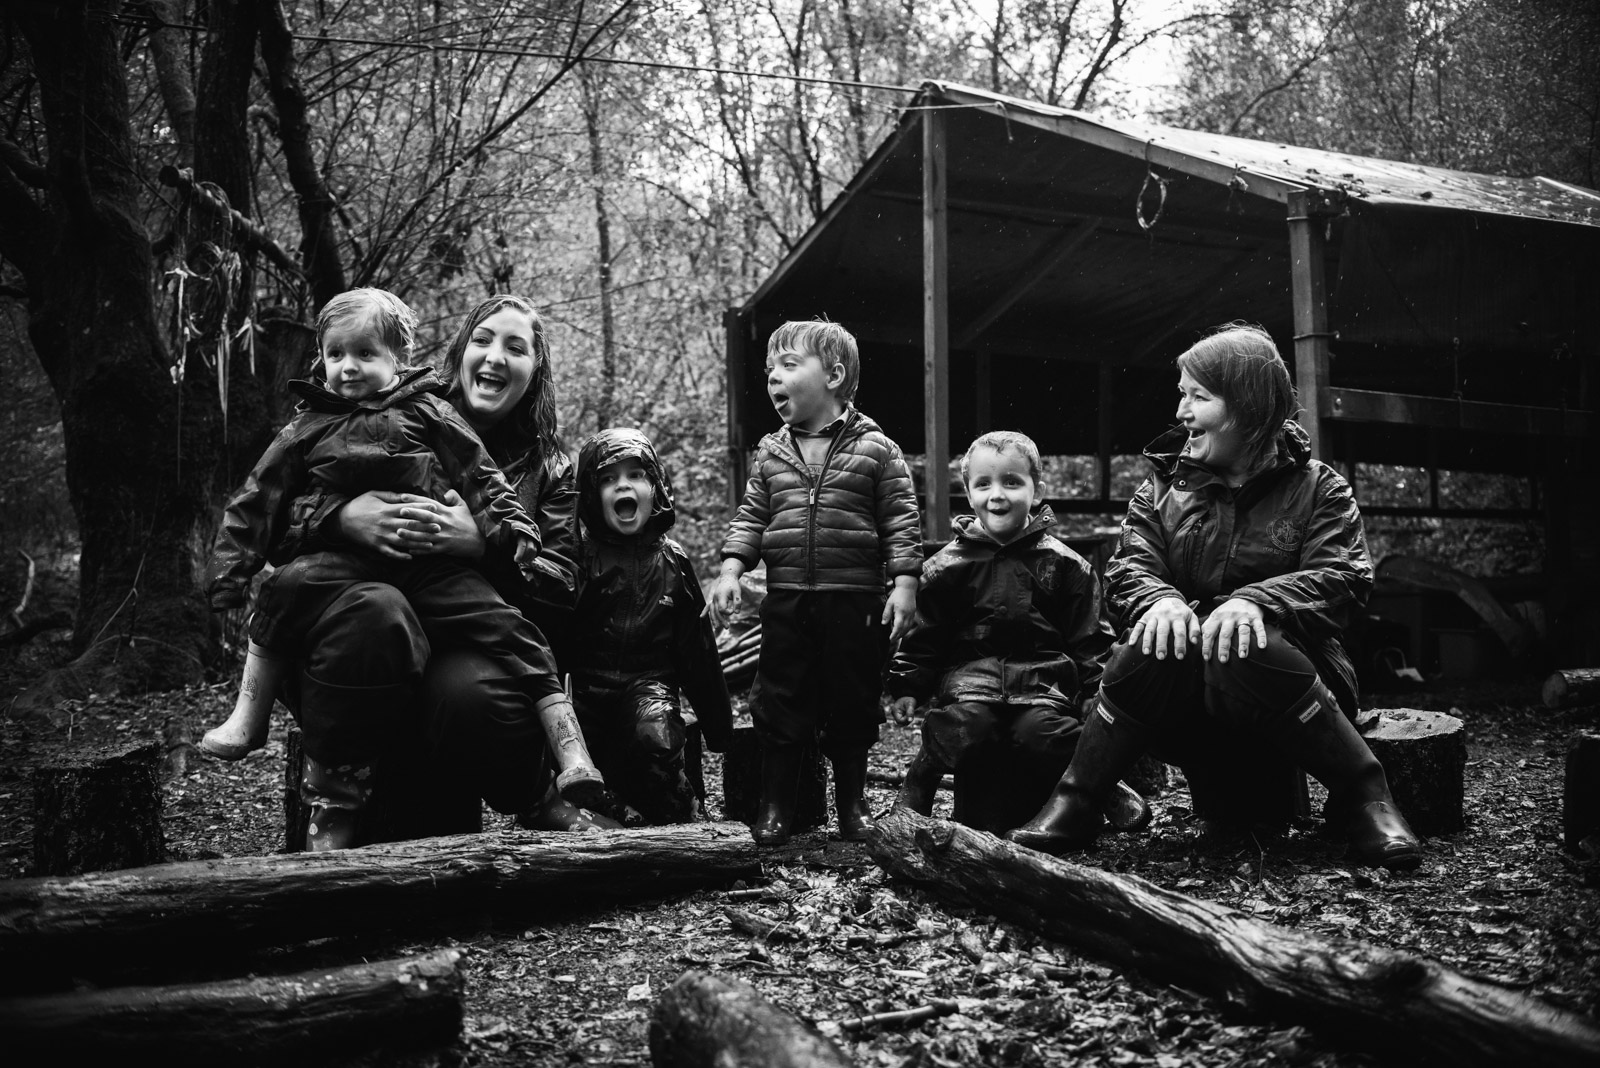 Forest school photographer of children in the woods at Berkshire school Thorngrove